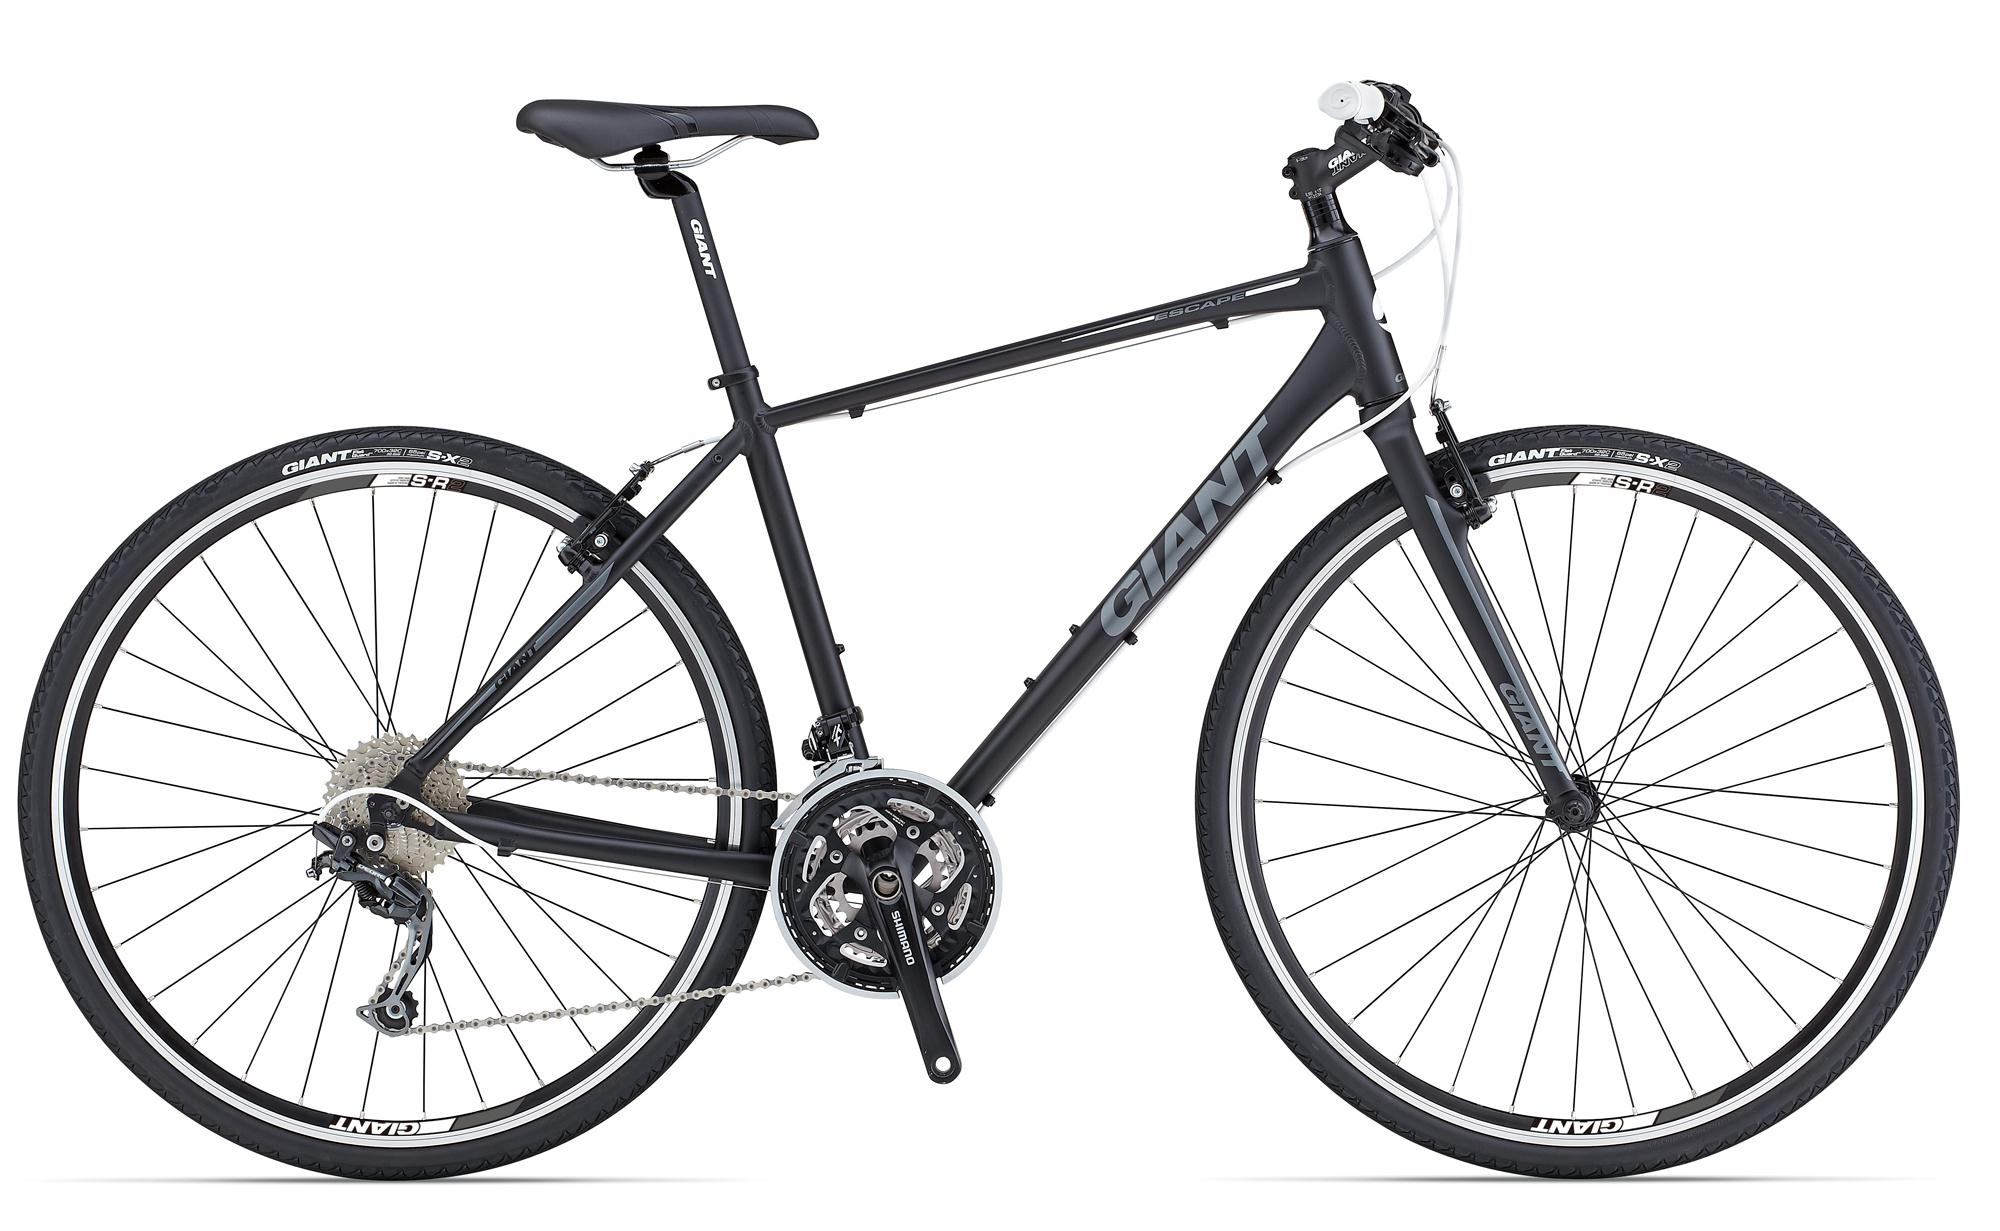 http://www.giant-bicycles.com/_generated/_generated_ua/bikes/models/images/2000/2013/Escape%200.jpg